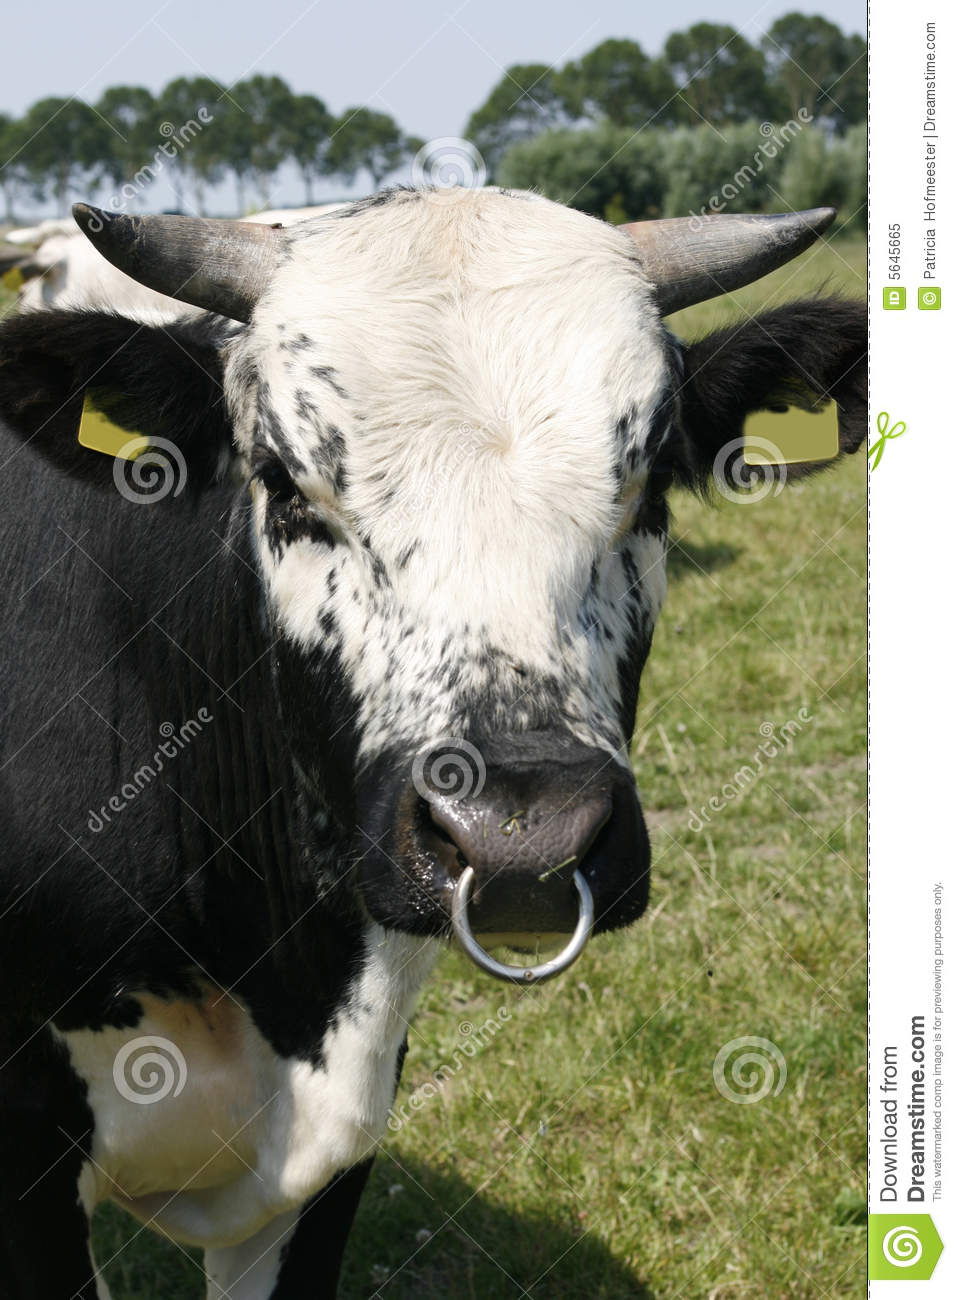 Bull With Snout Ring Royalty Free Stock Photo Image 5645665